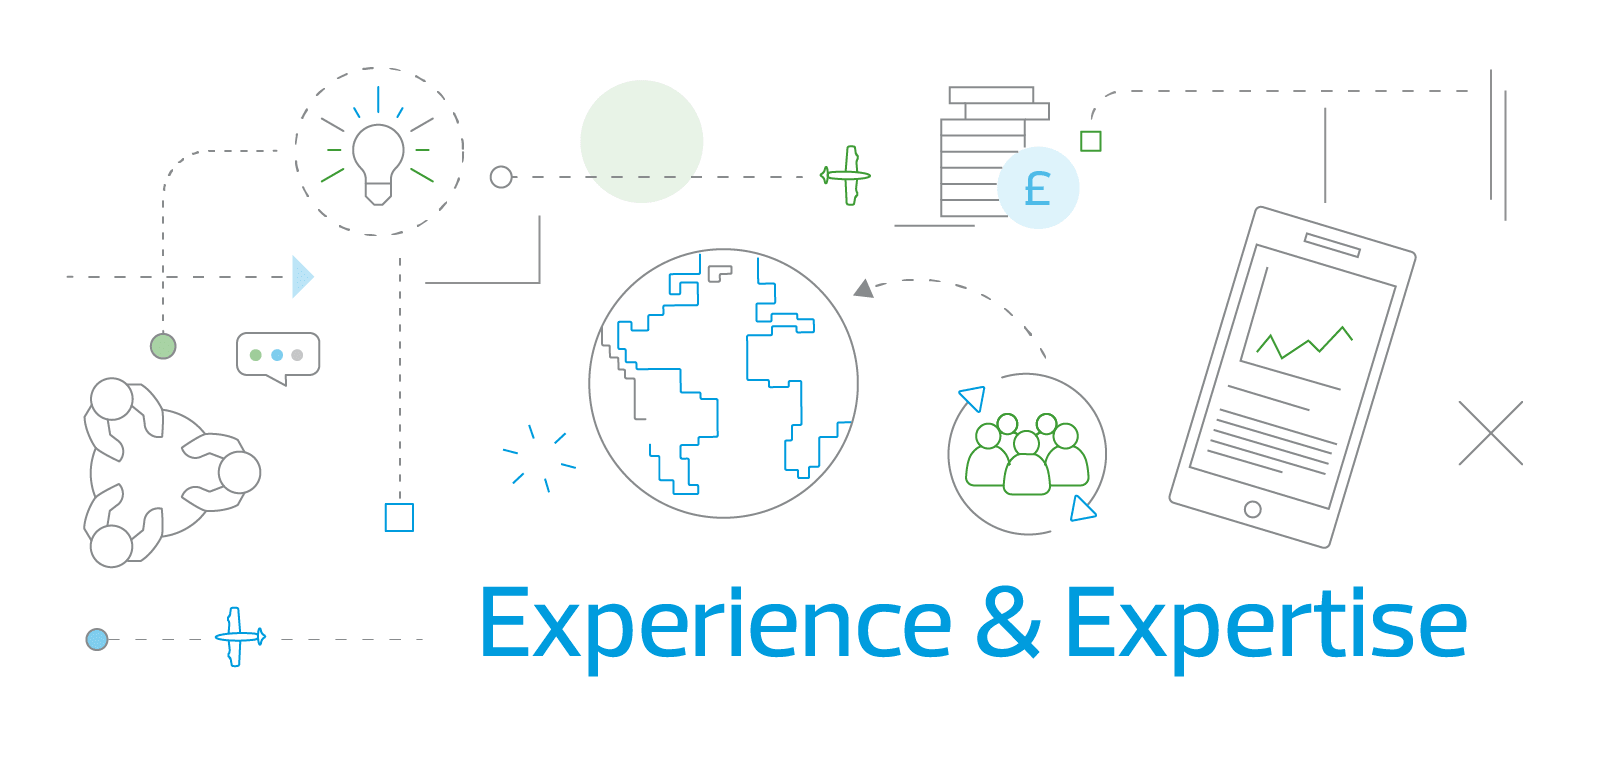 public://media/services/fdd_experience_and_expertise_thumbnail_770x367px_no_fdd_text.png